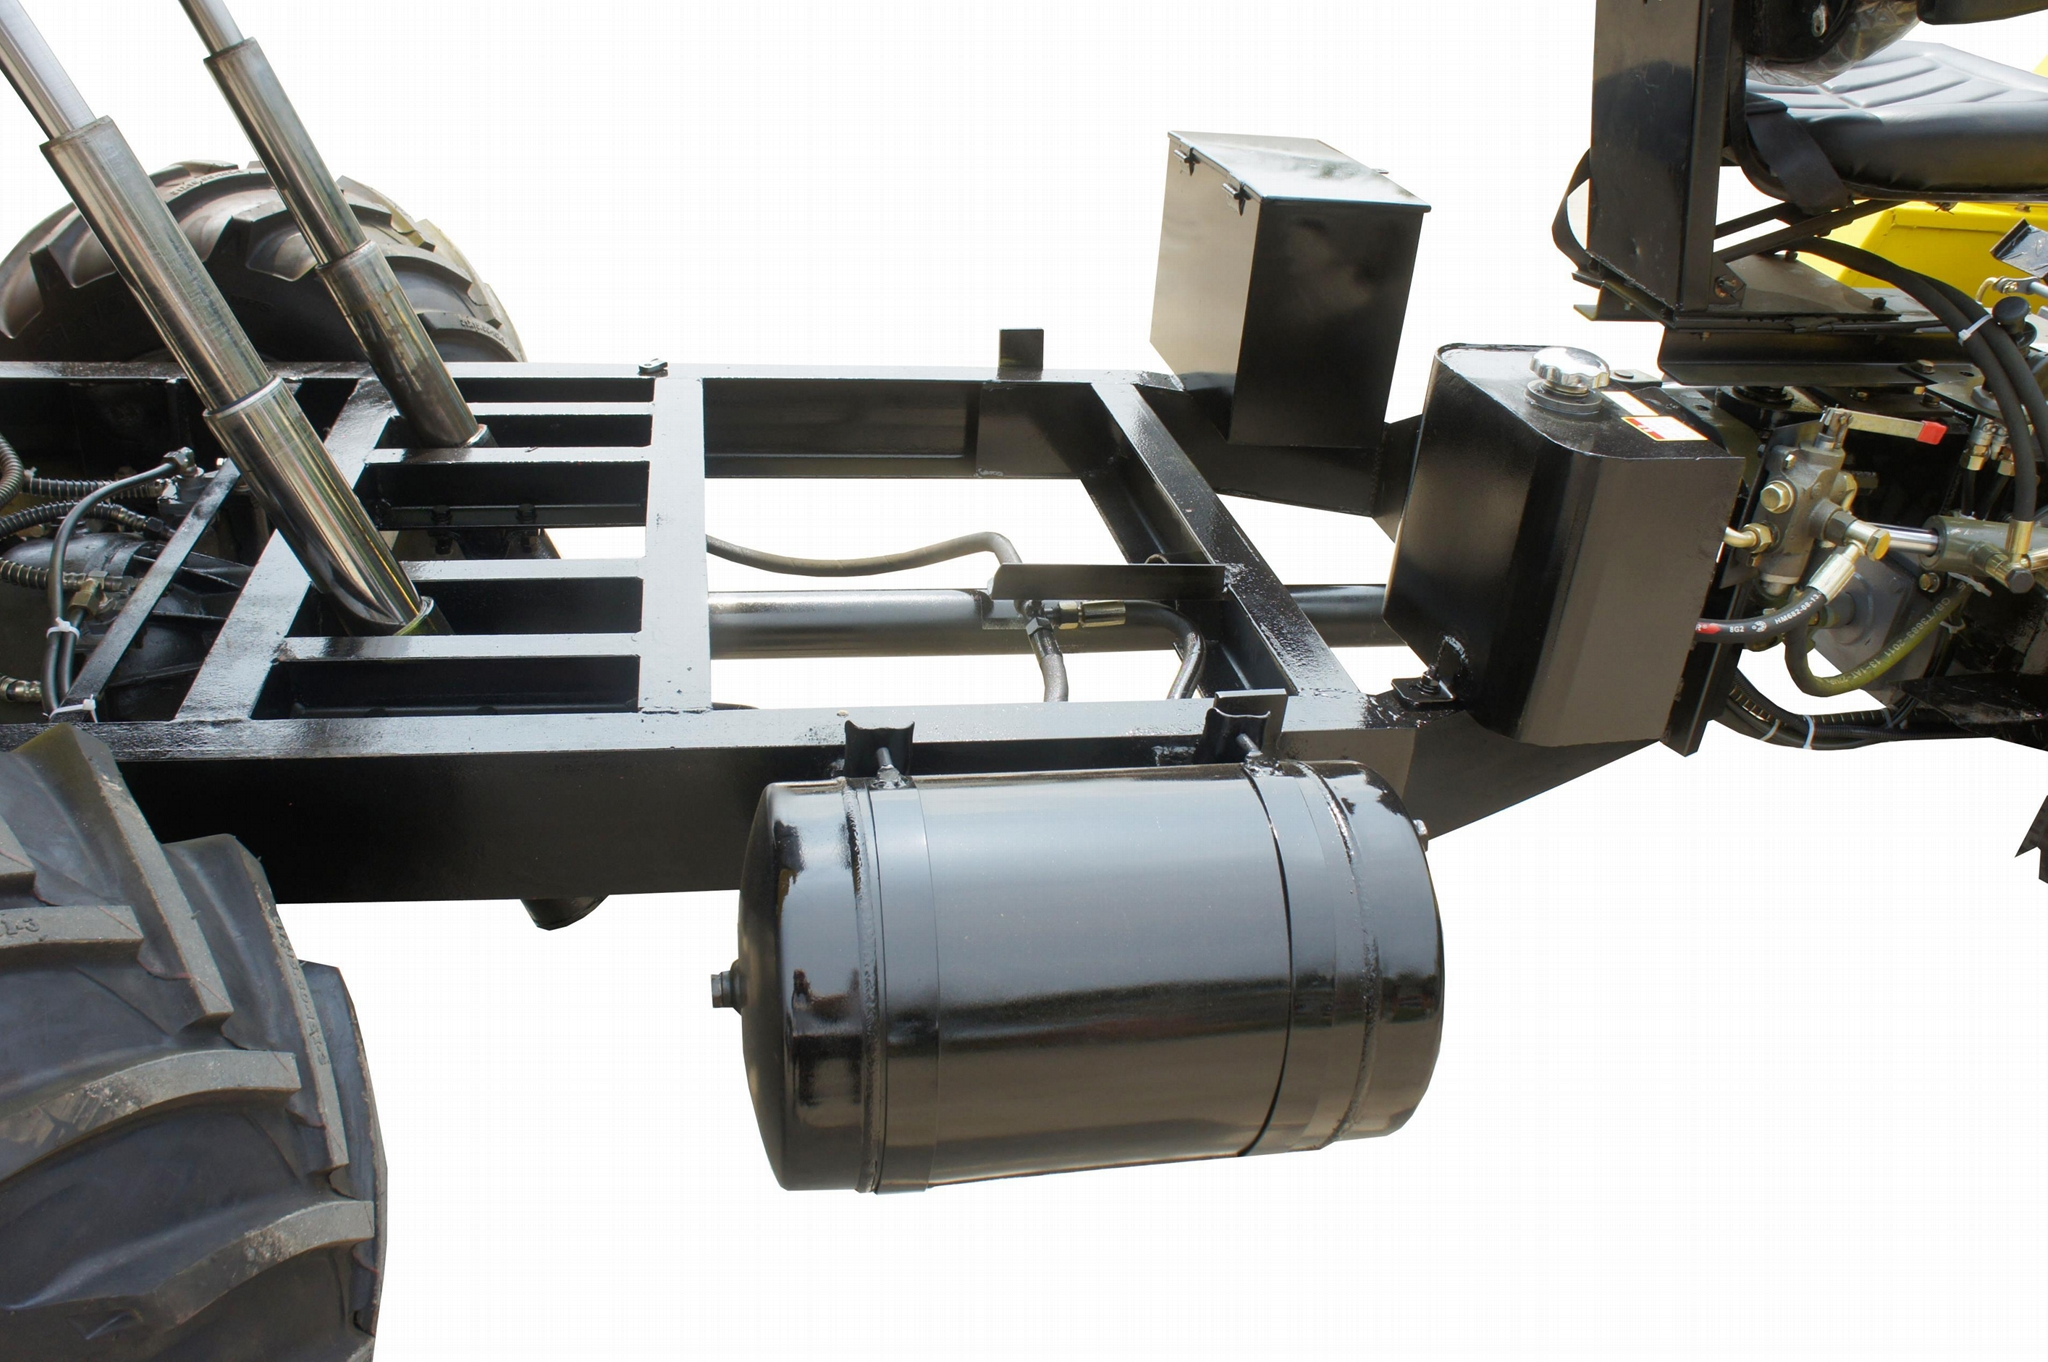 Four wheel drive chassis system